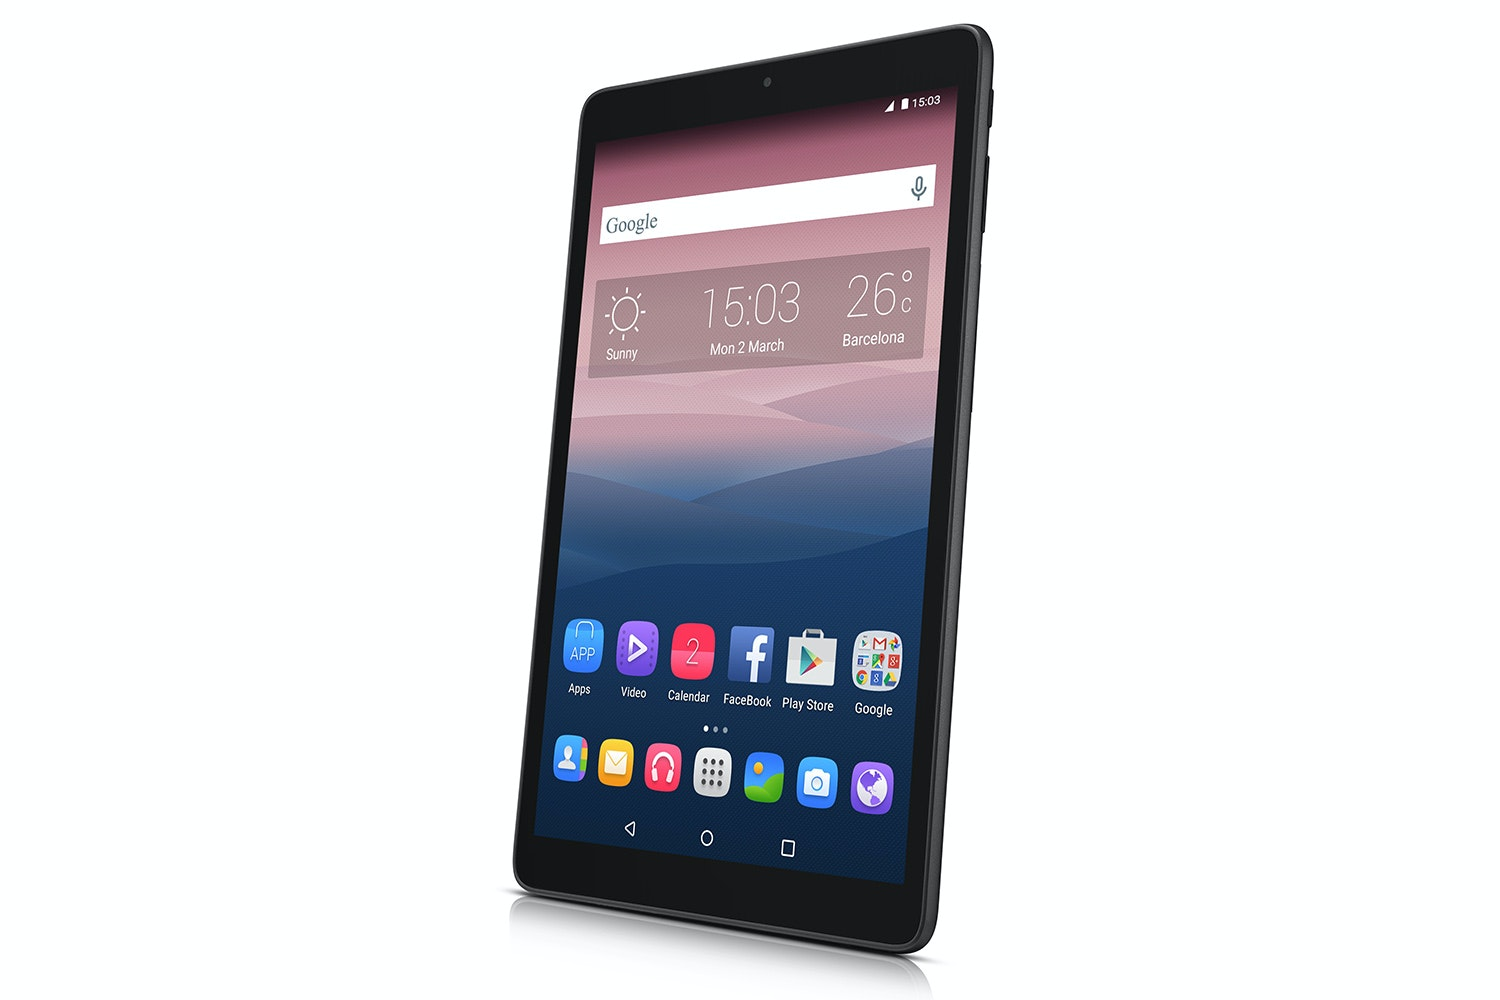 Alcatel Pixi 3 10"